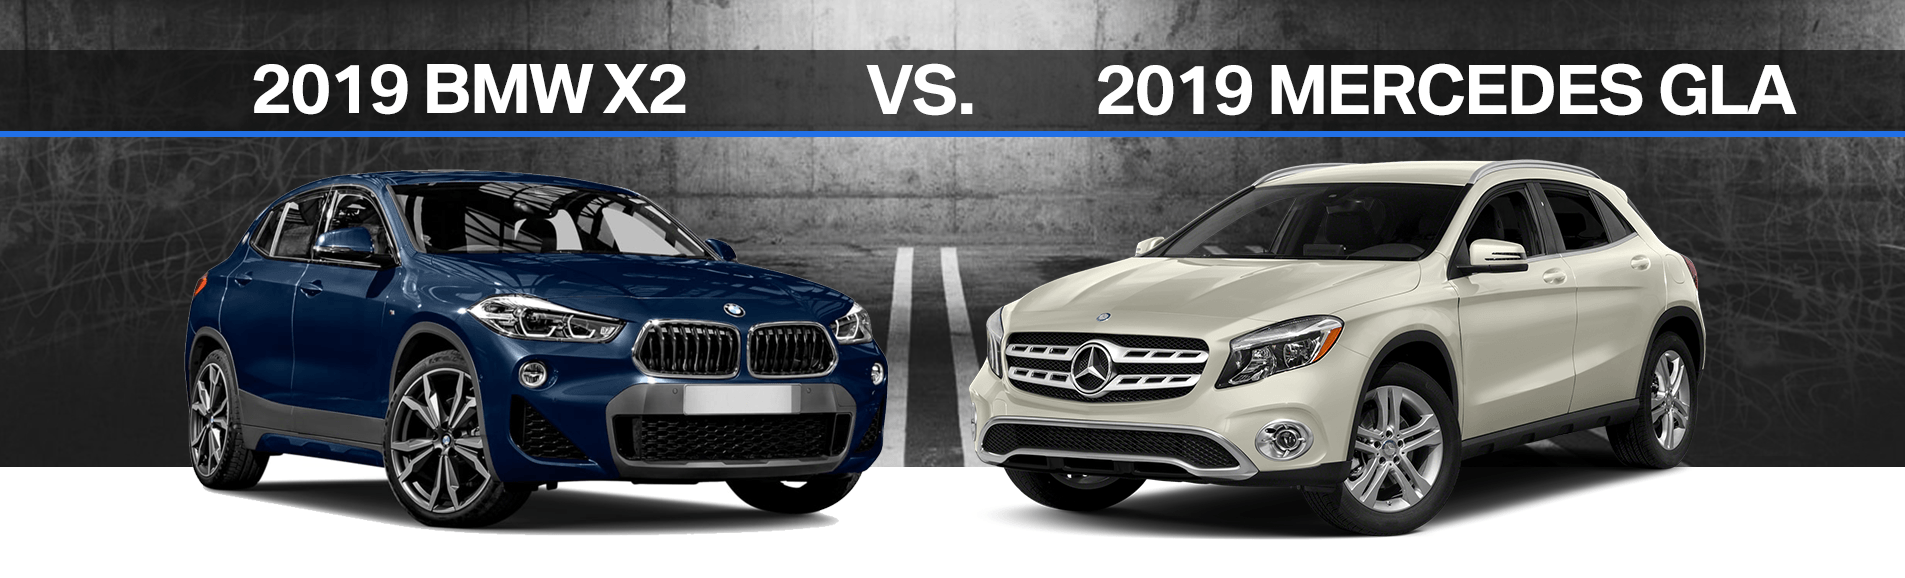 ELMHURST BMW 2019 X2 COMPARISON